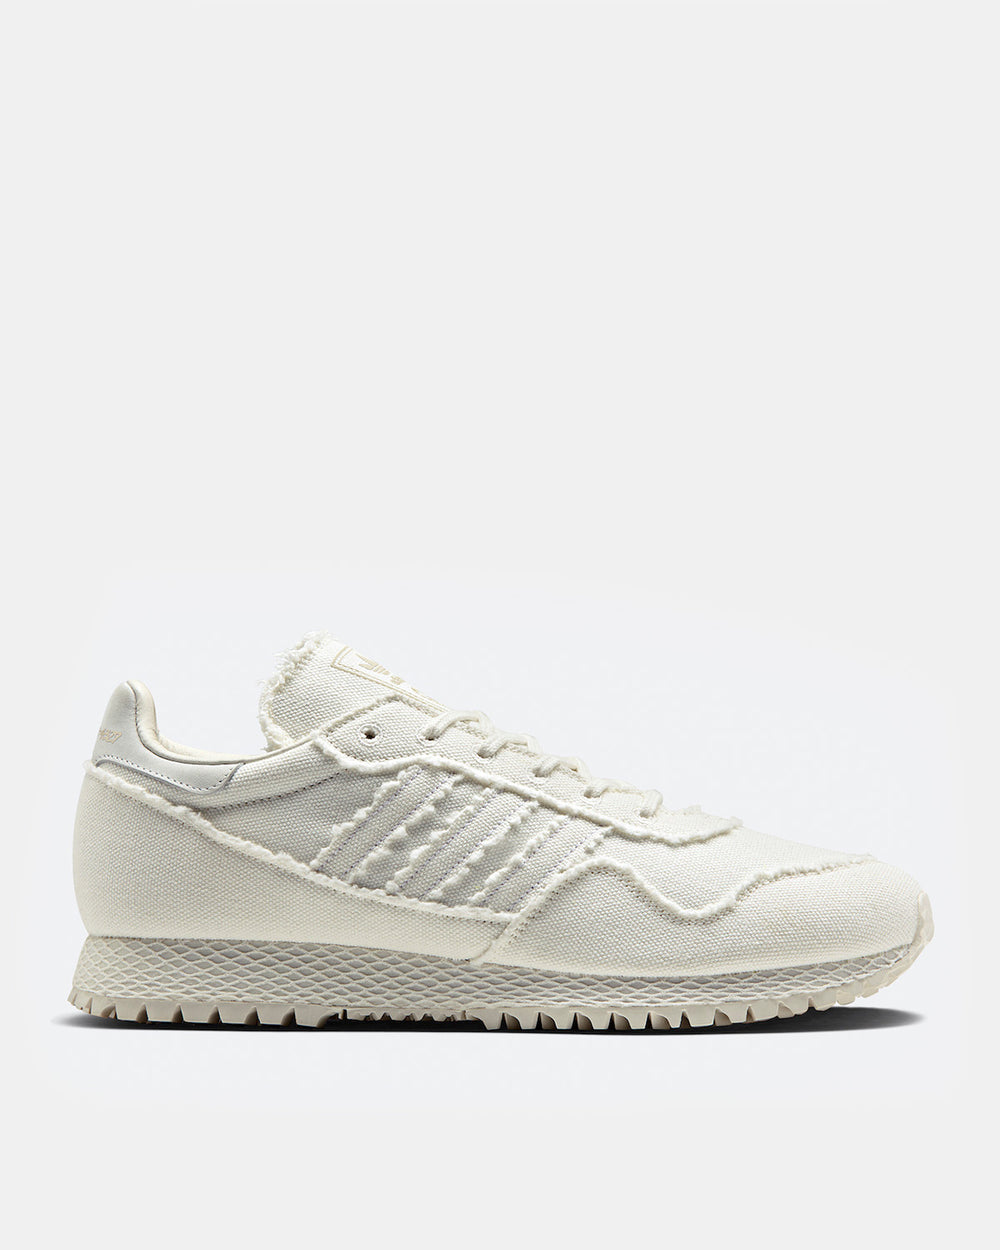 adidas - Daniel Arsham x adidas Originals New York Past (Triple White)